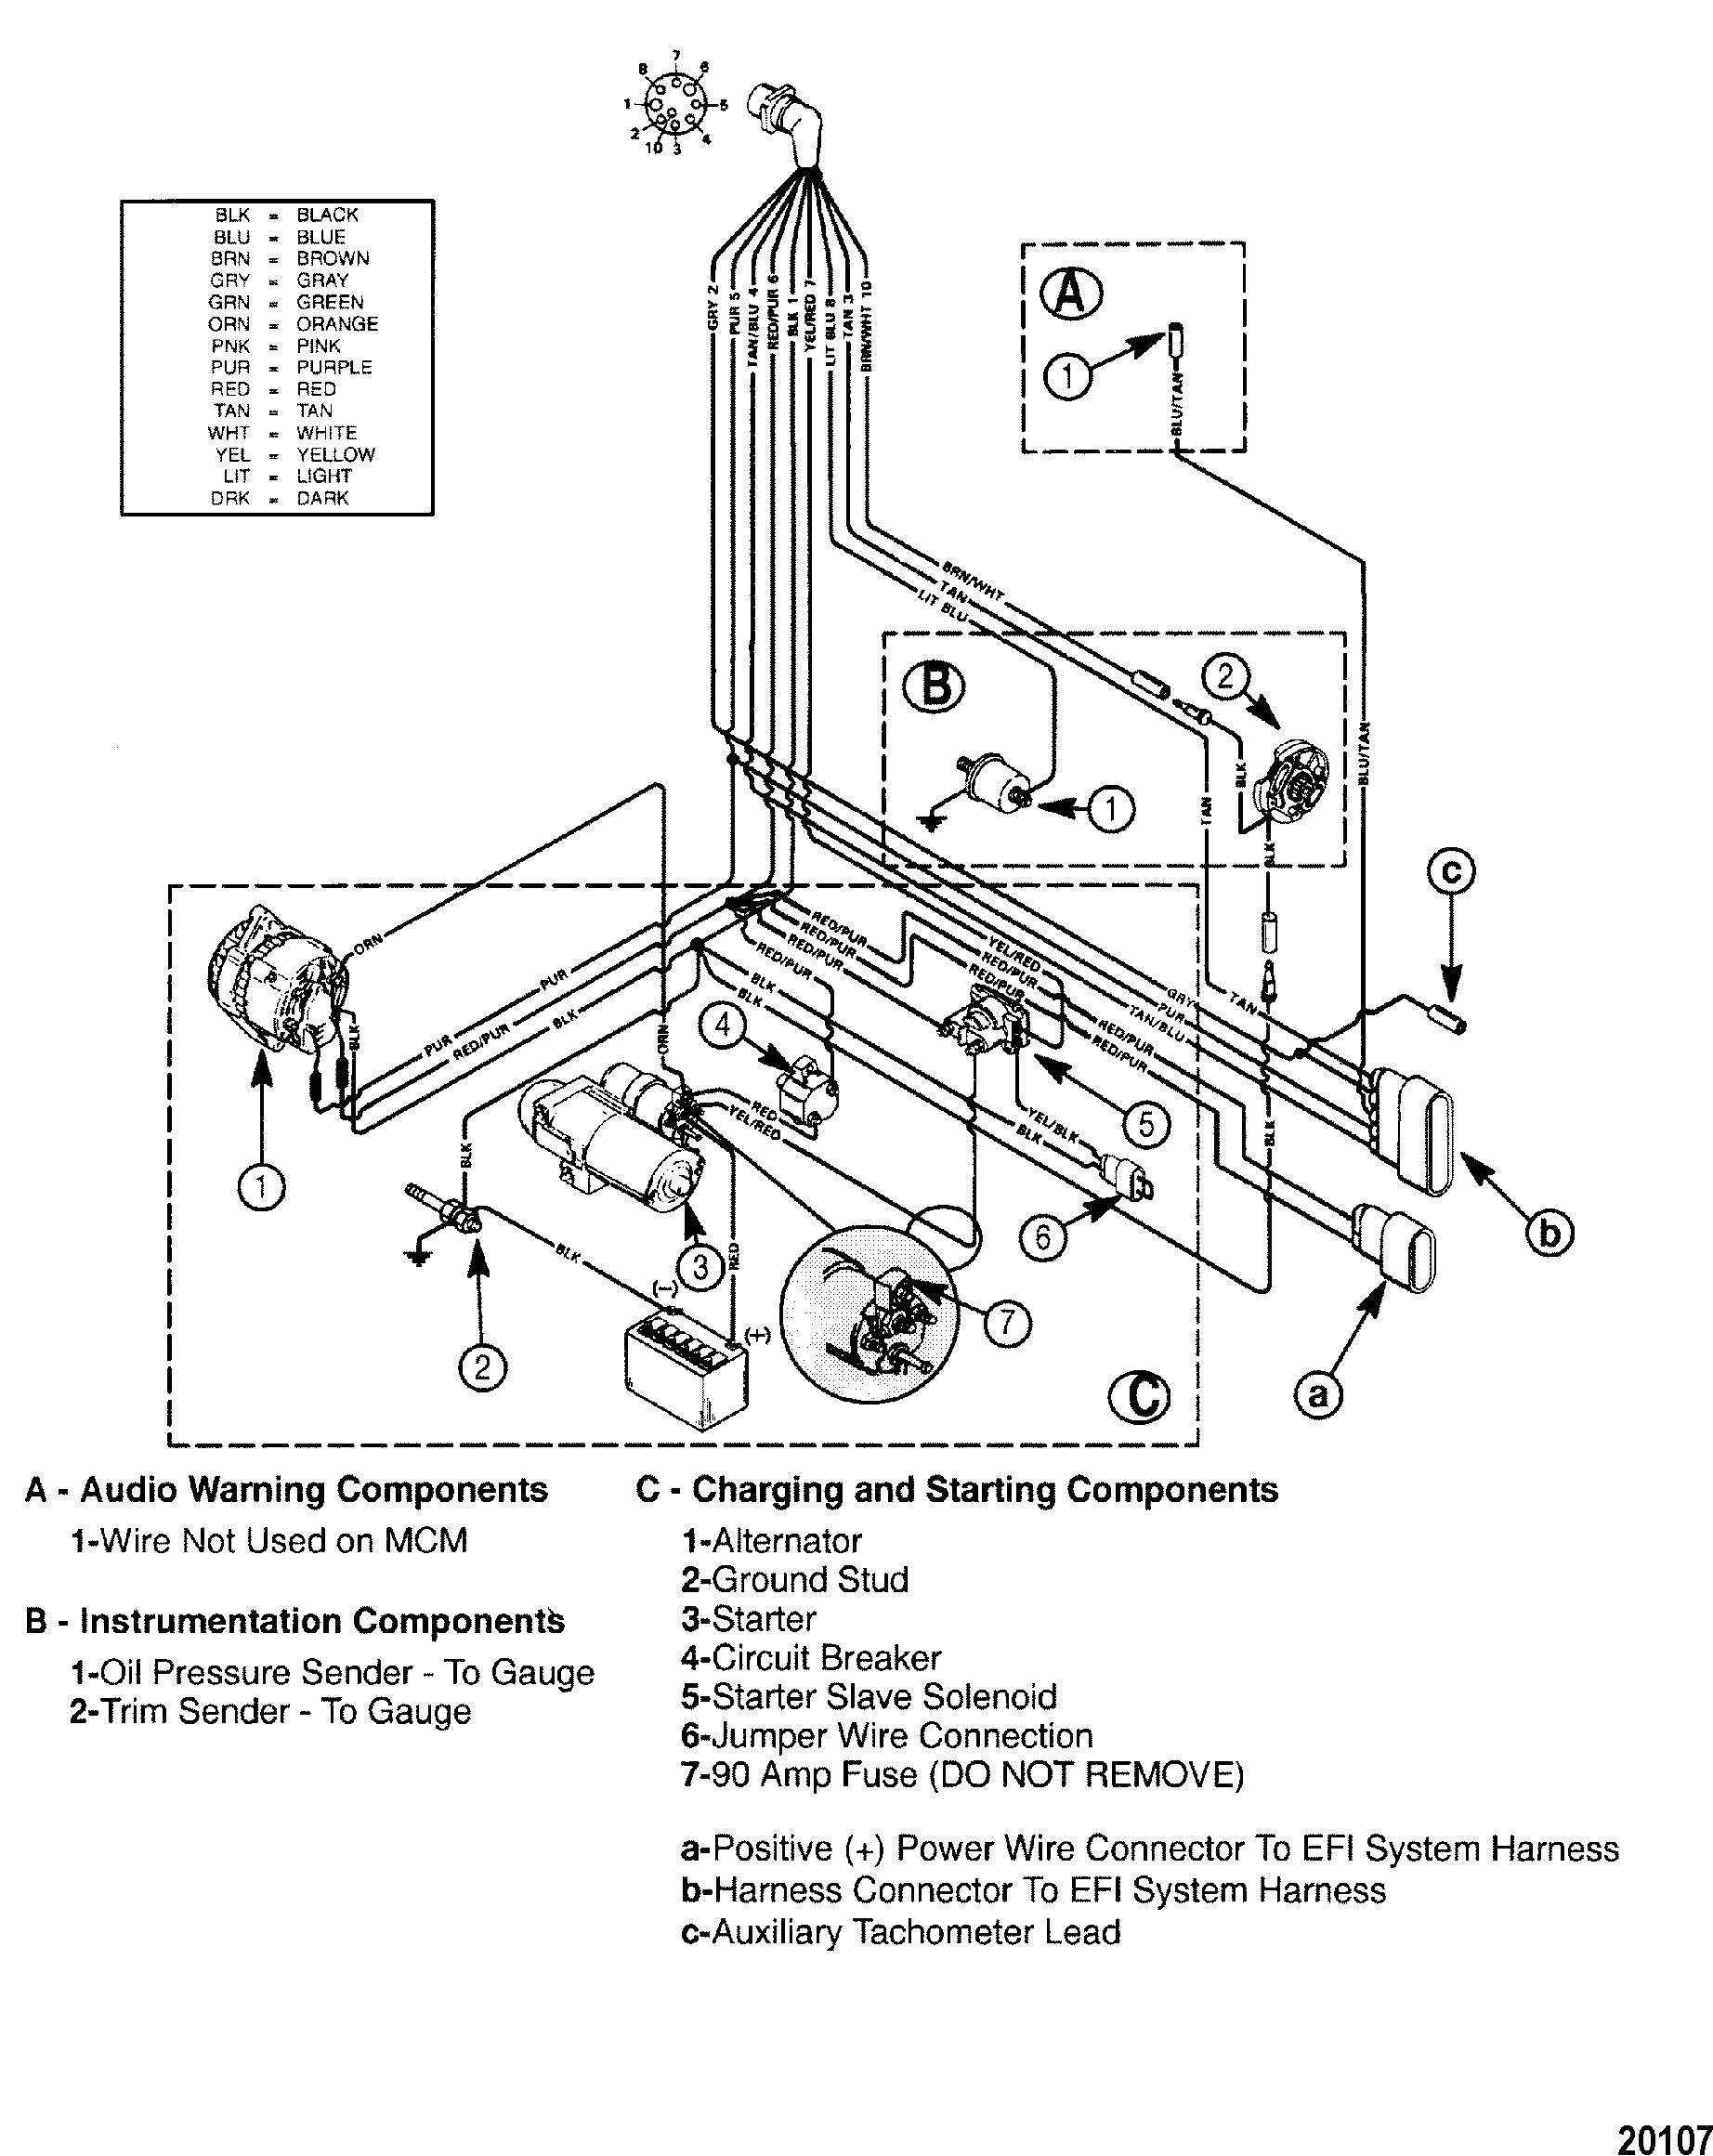 2003 jaguar x type v6 engine diagram  jaguar  auto wiring